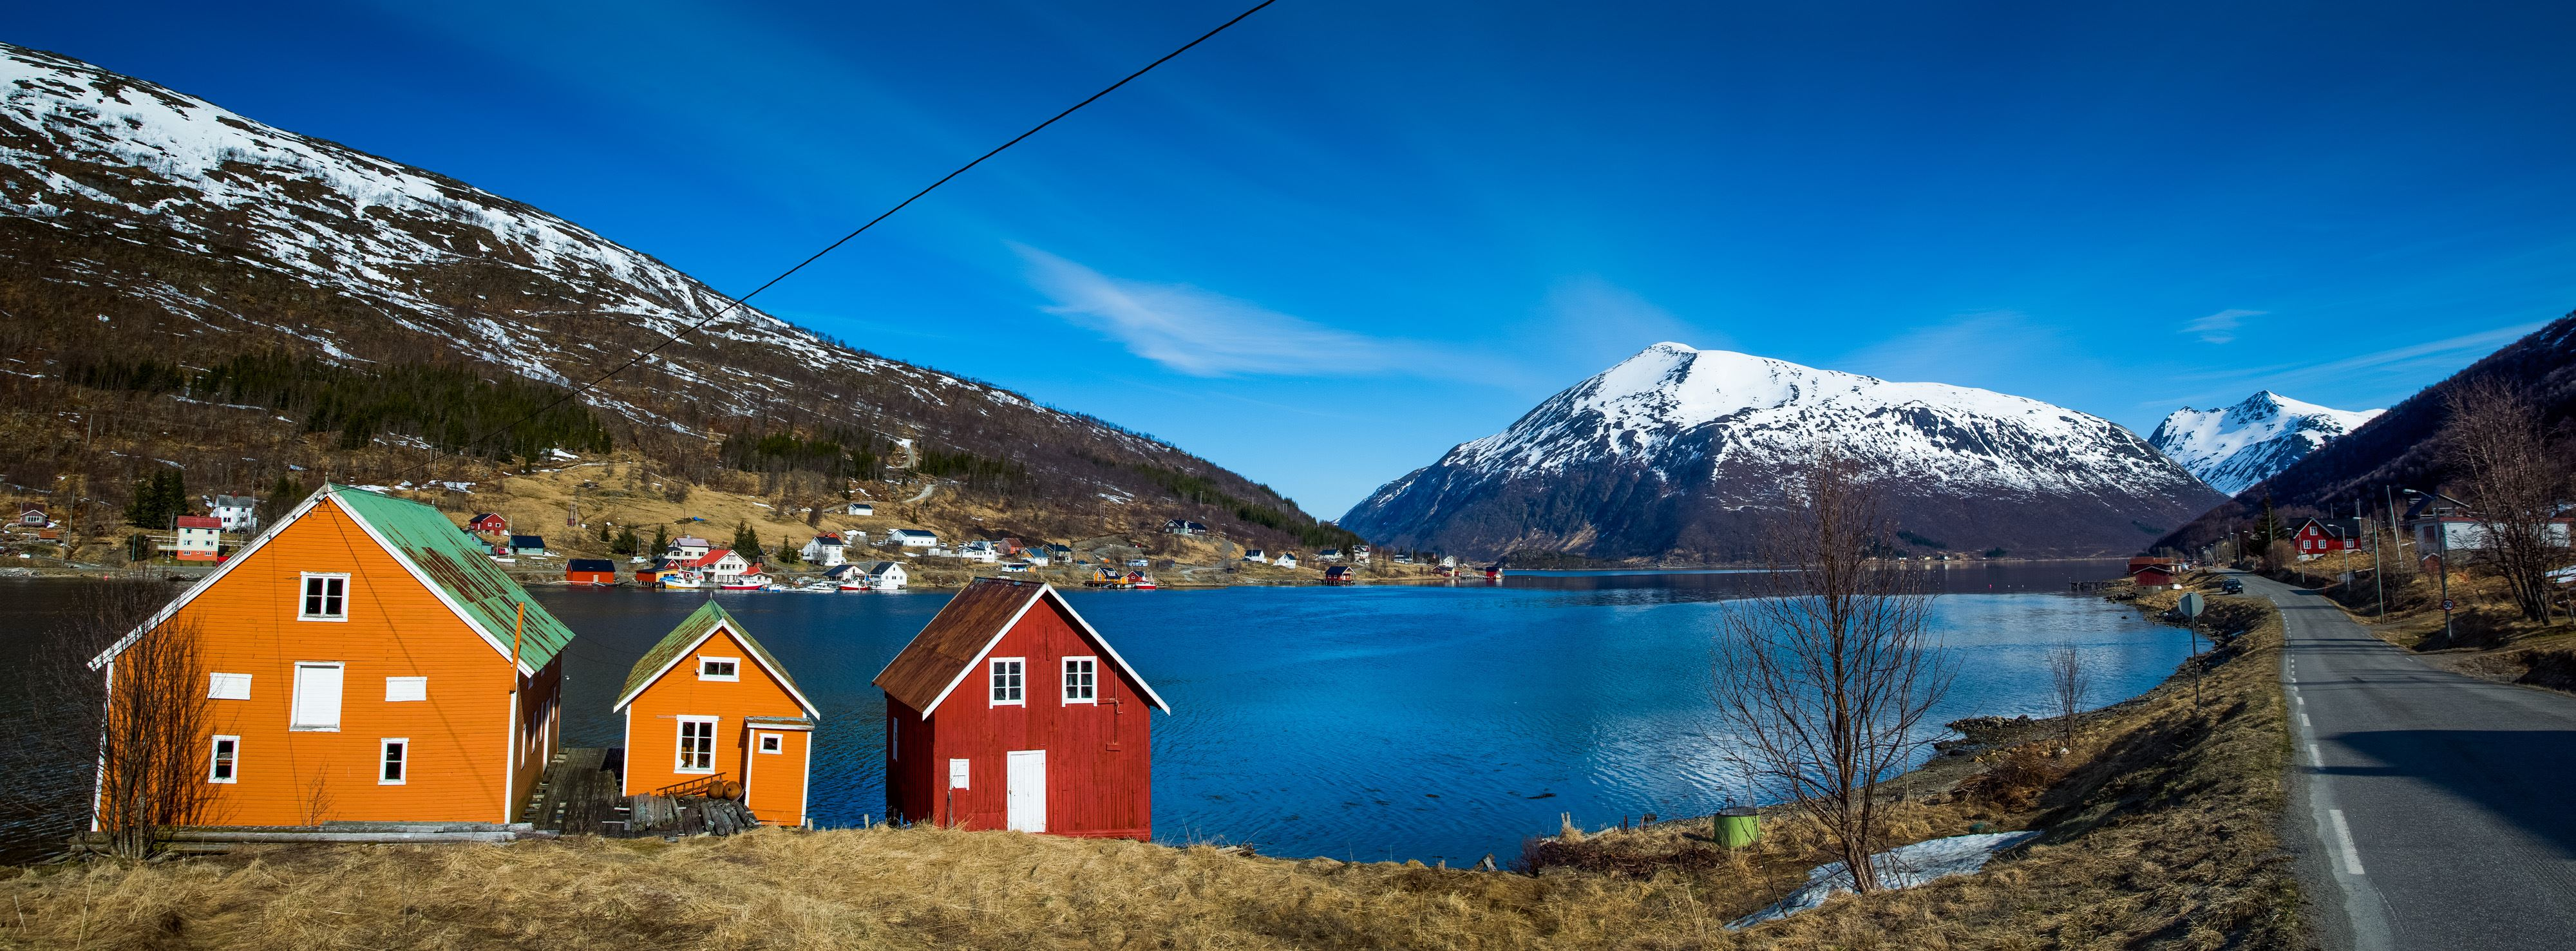 Yngve Olsen Sæbbe  , EXPLORE THE FJORDS - a trip by car along the coast of Kvaløya - Evening tour - Ersfjordbotn Brygge